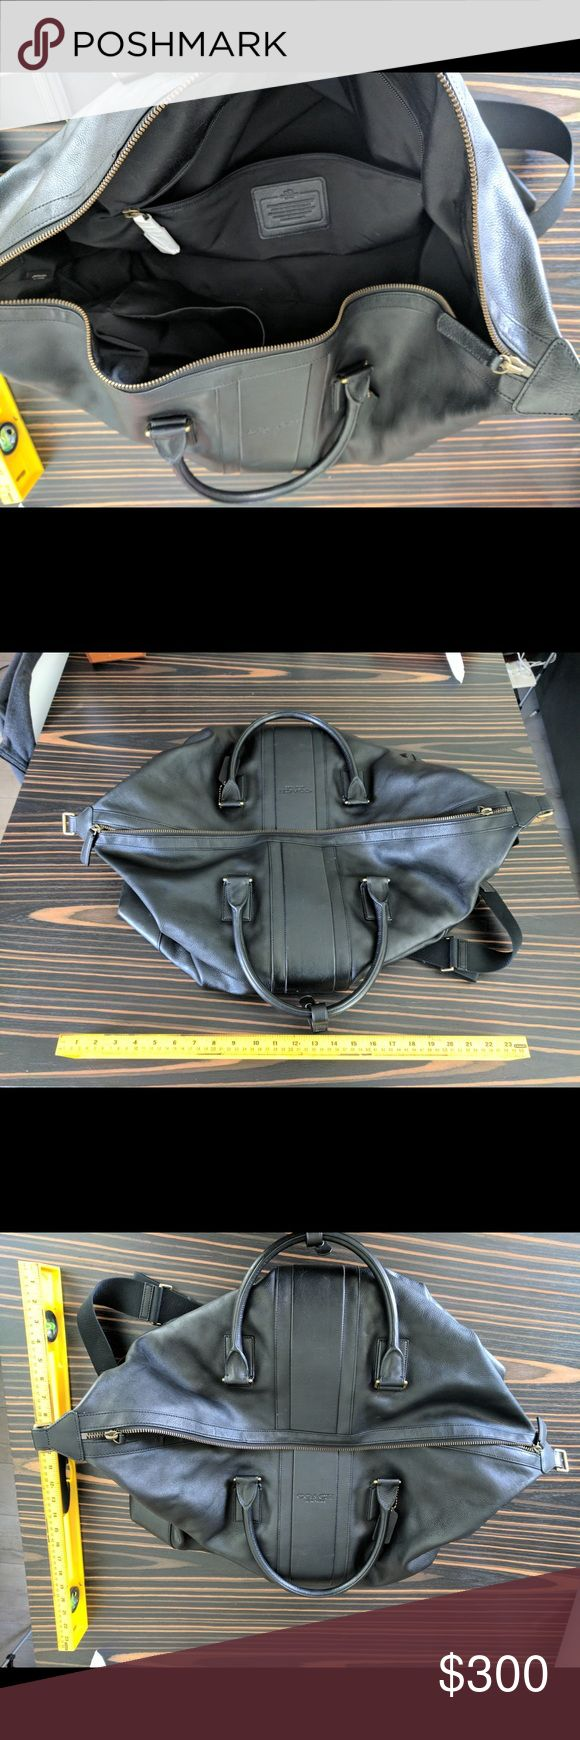 Coach international weekender full leather bag Nearly perfect condition all leather genuine Coach weekender bag. Used only a handful of times. Coach Bags Travel Bags